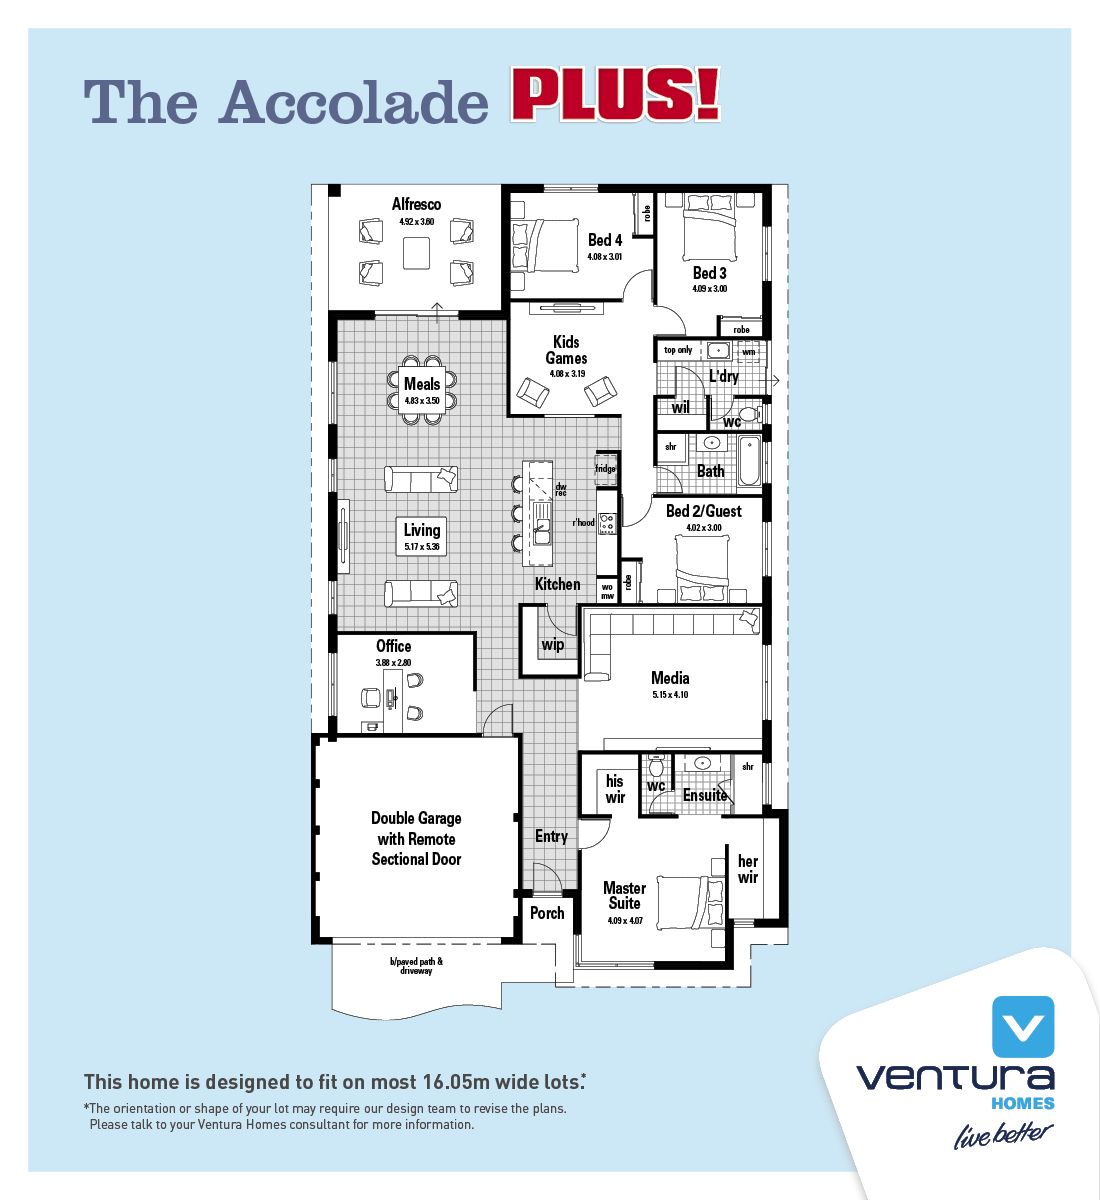 accolade plus ventura homes hp perth wa pinterest house